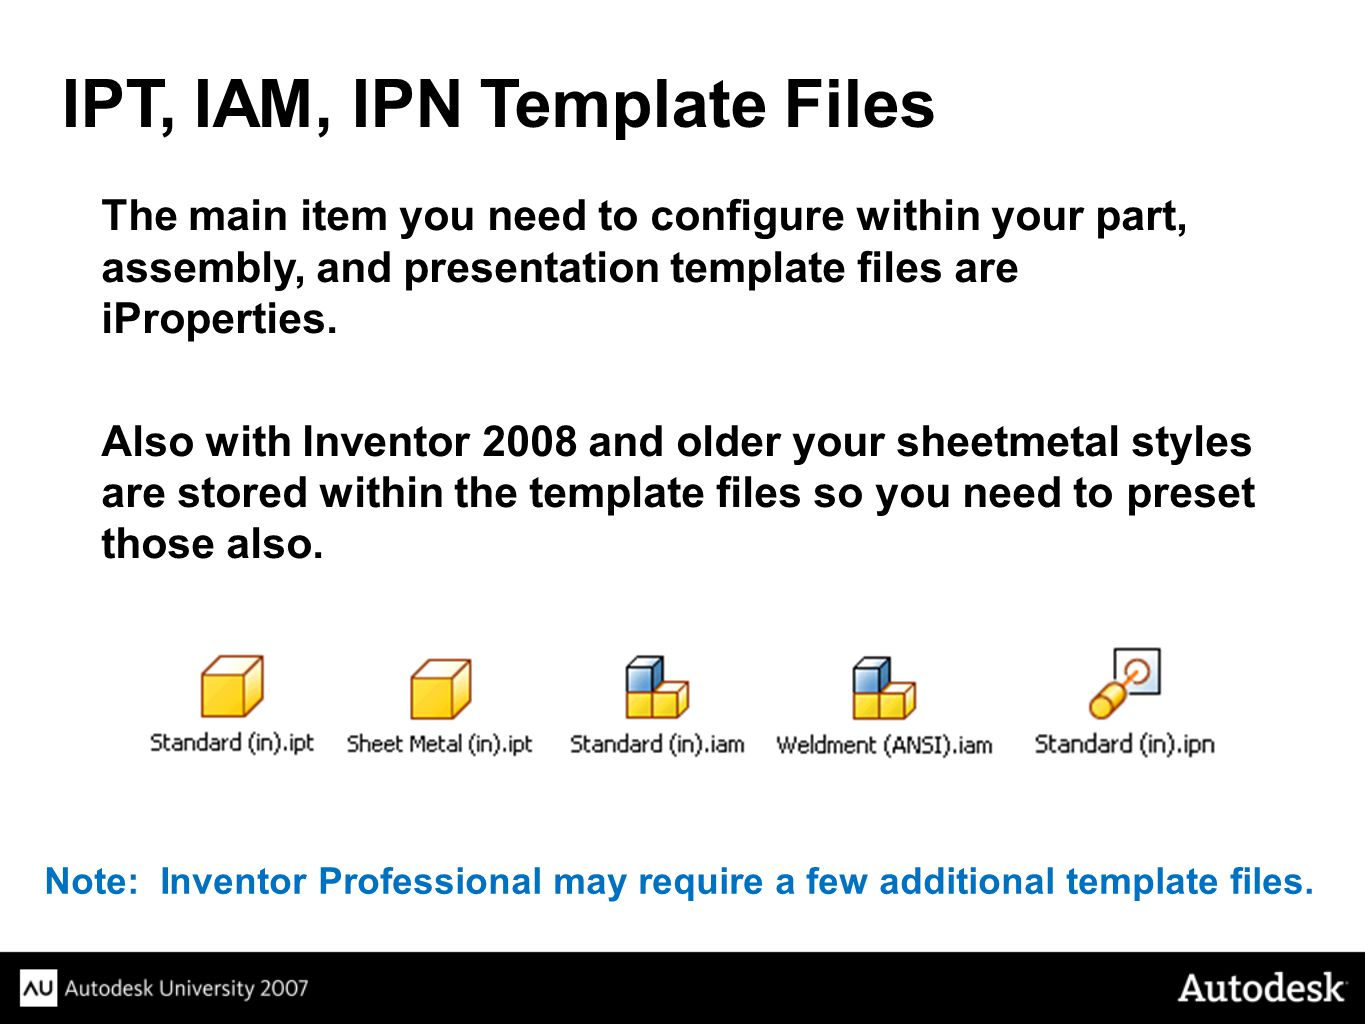 IPT, IAM, IPN Template Files